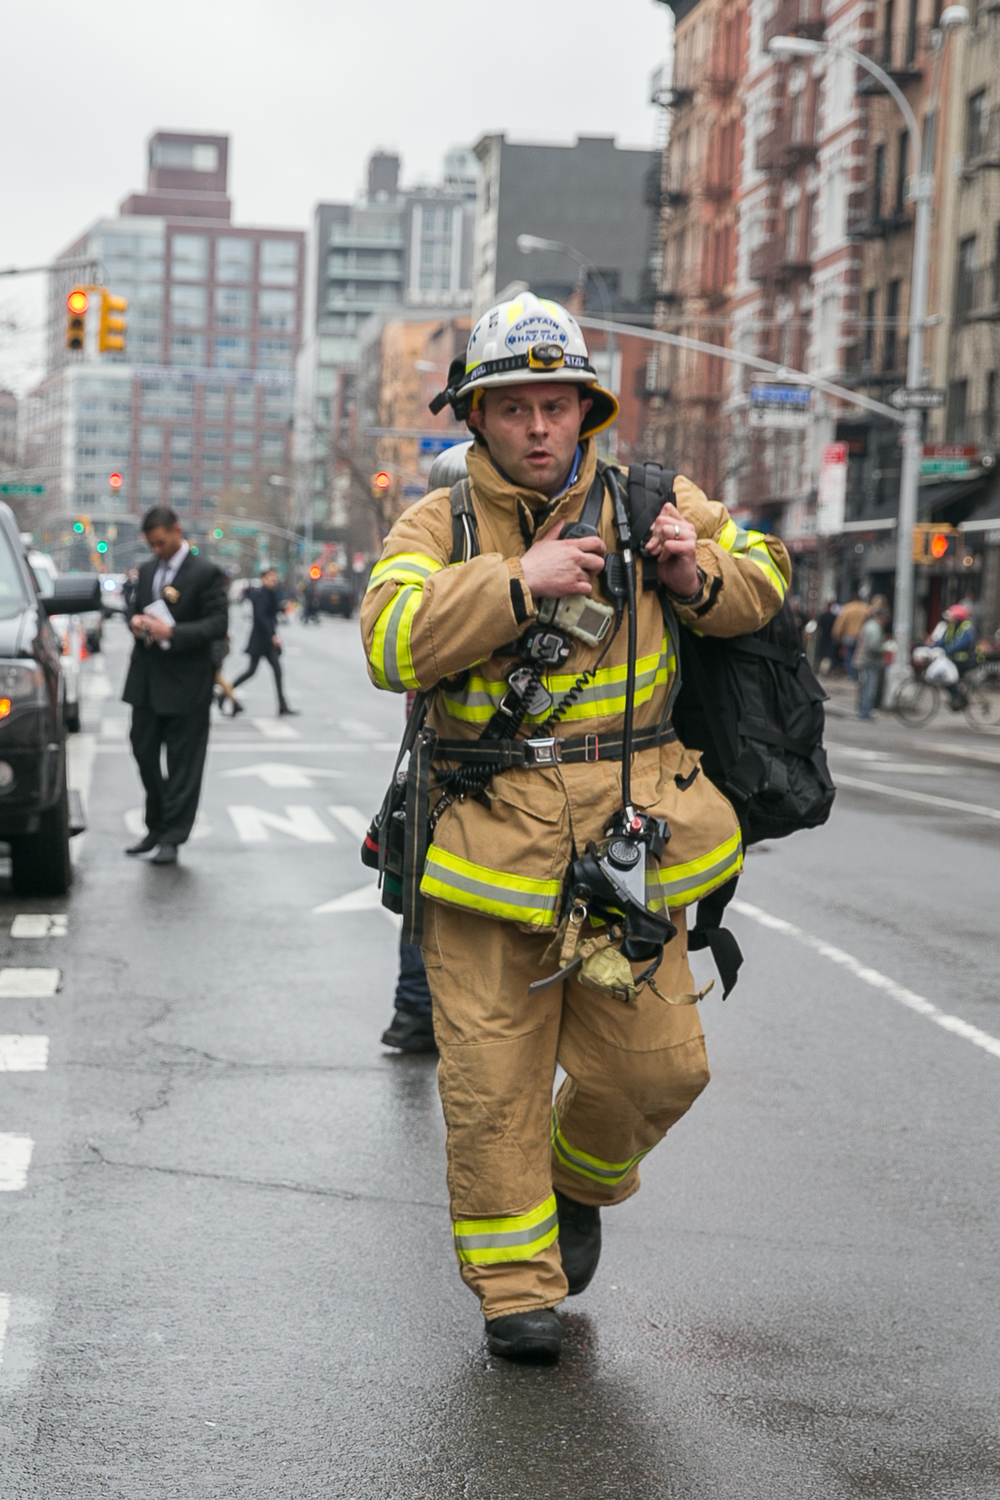 fireman, fire, 2nd avenue, brave, fearless